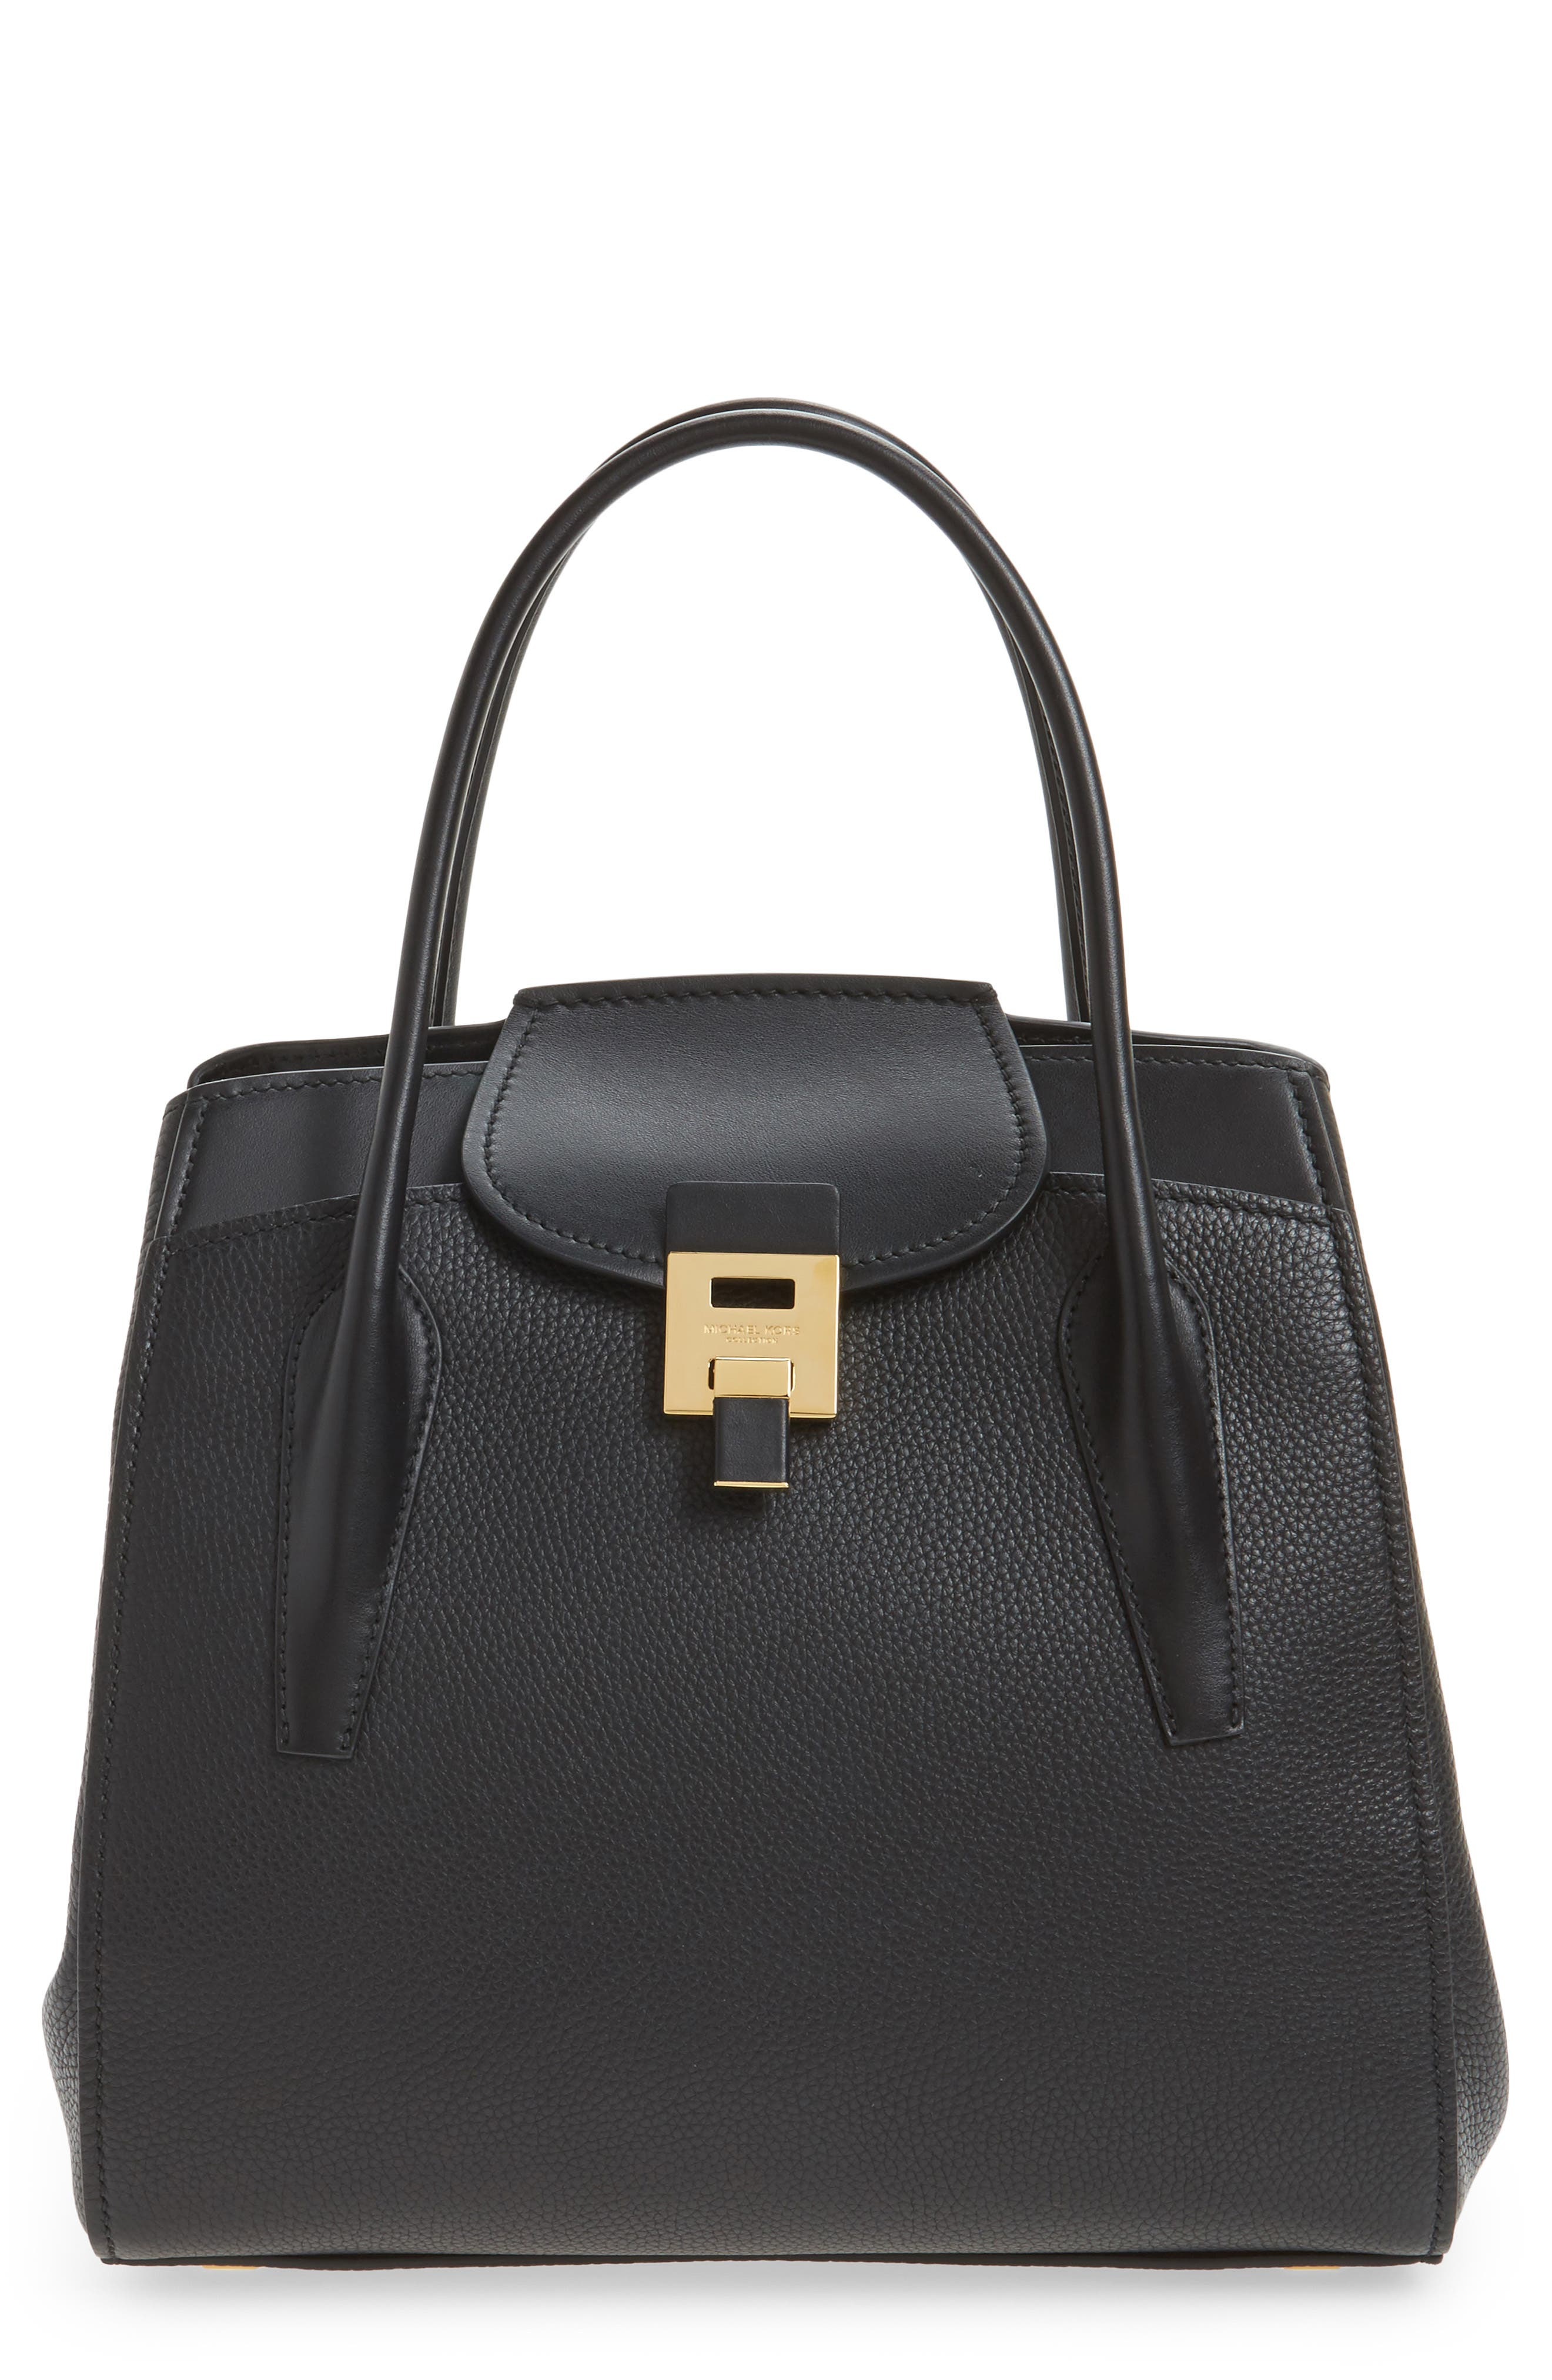 Alternate Image 1 Selected - Michael Kors Large Bancroft Leather Top Handle Satchel